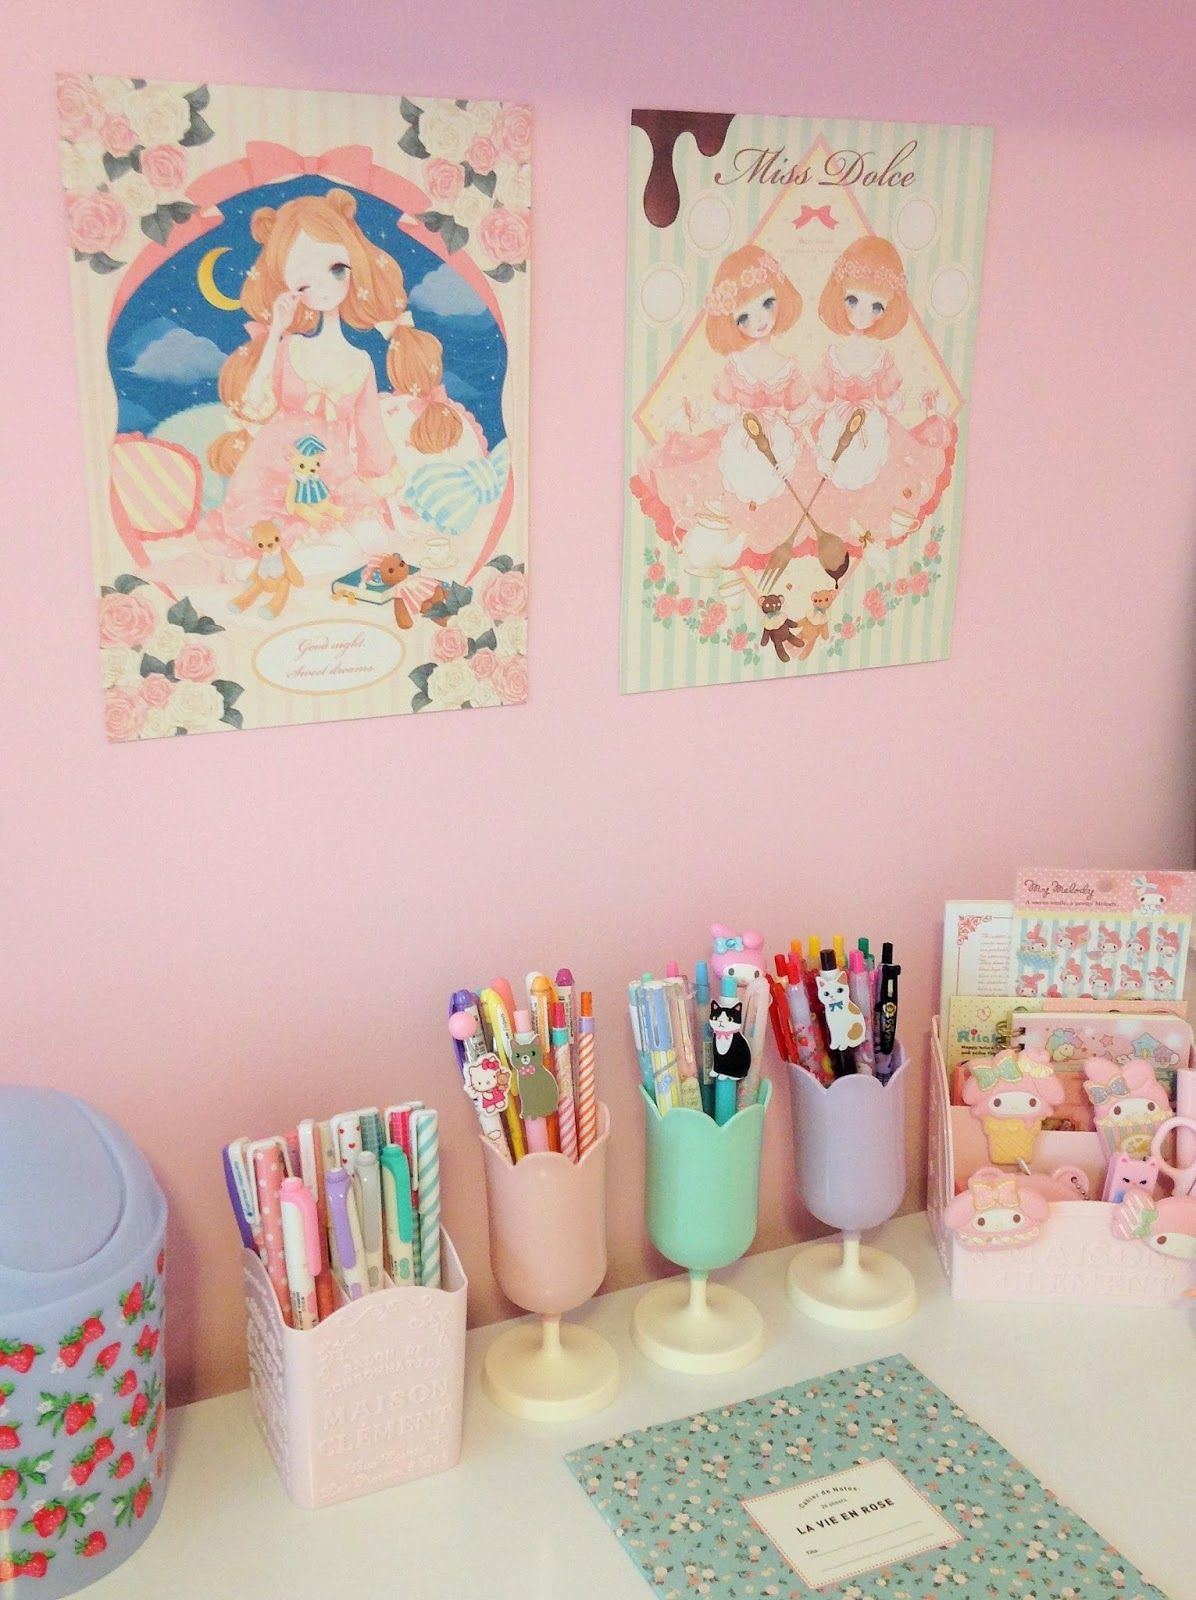 Décoration Chambre Kawaii Kawaii Room Inspiration From Pasteljellybeans.blogspot.com